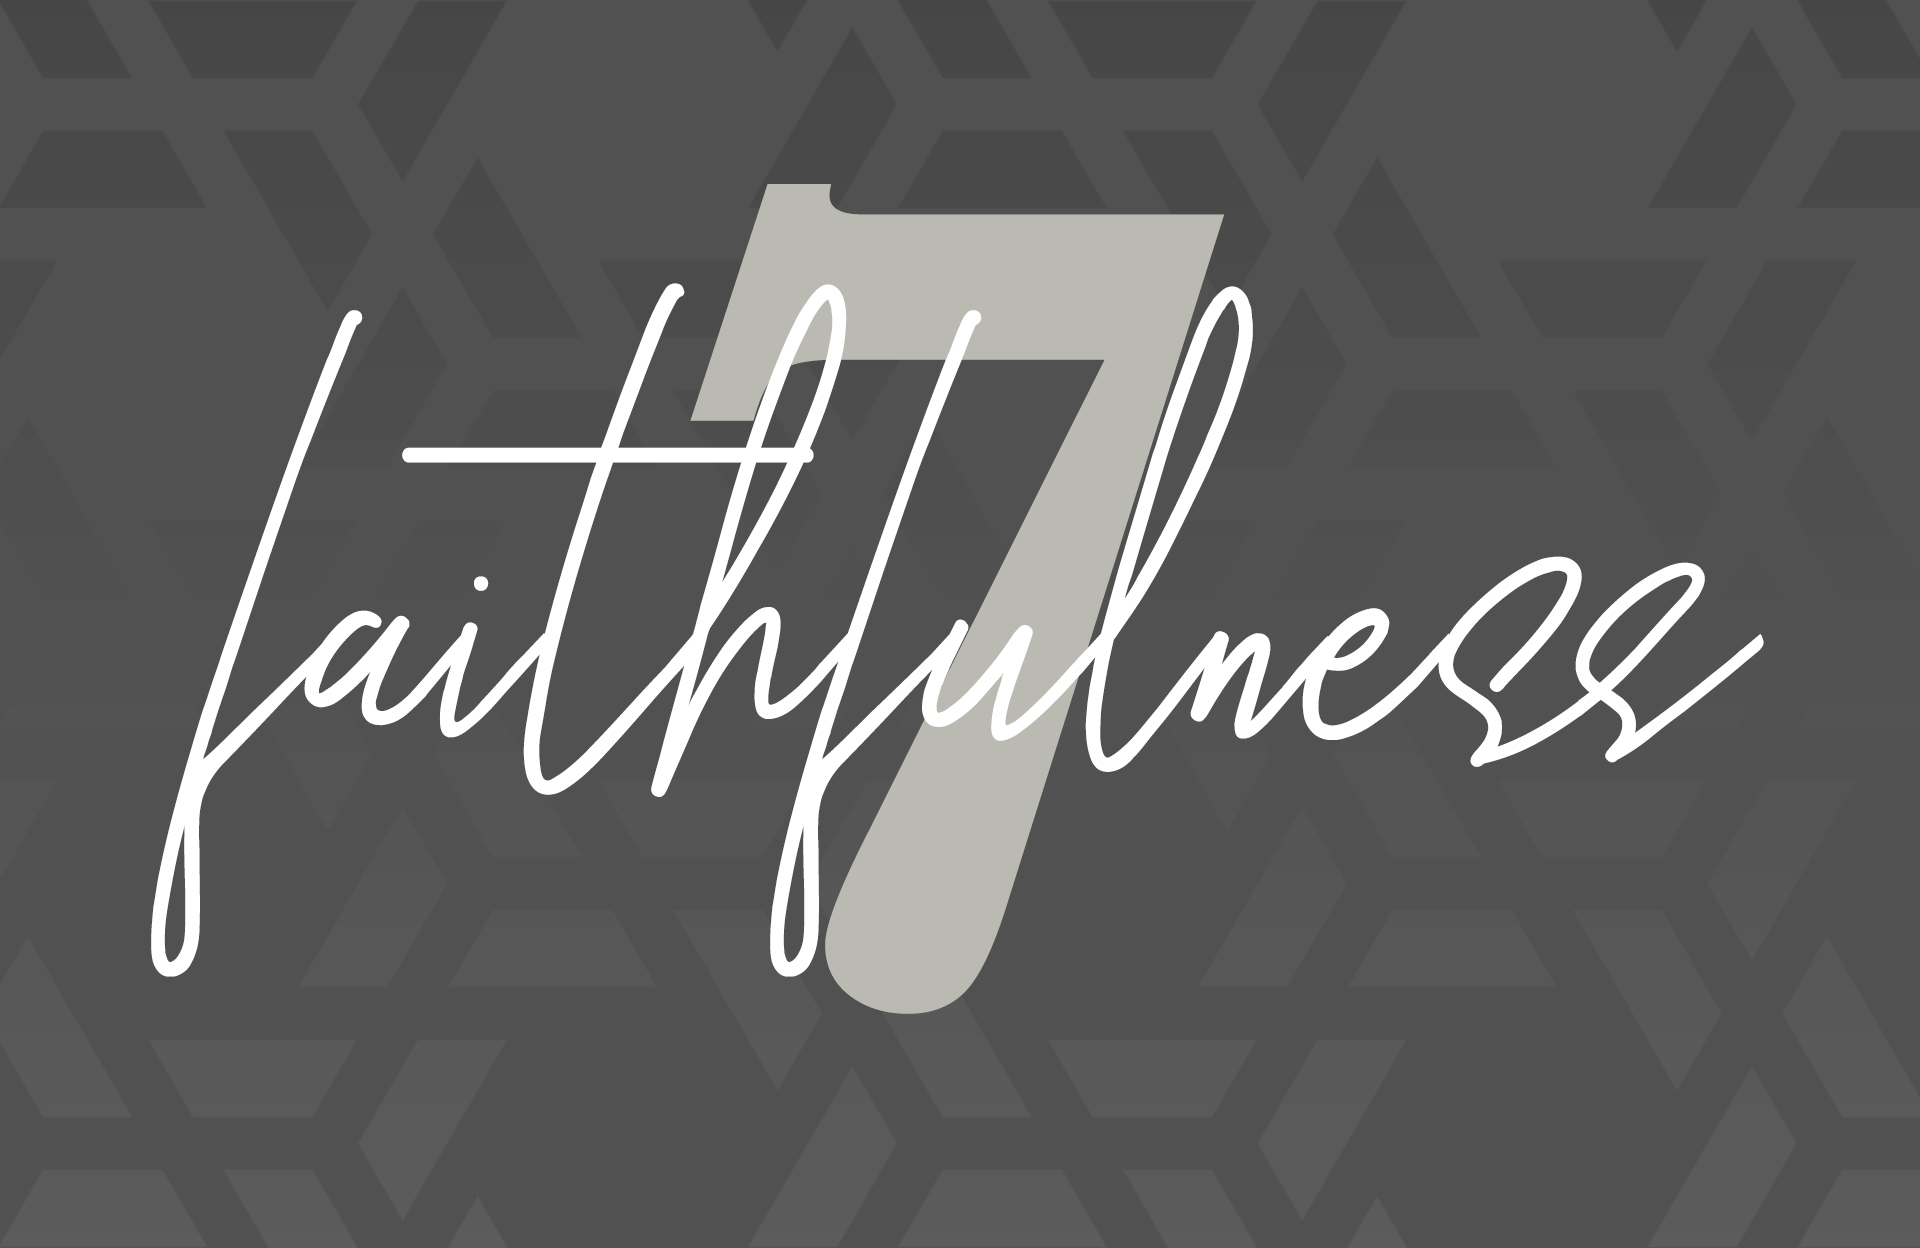 Day Seven: Faithfulness